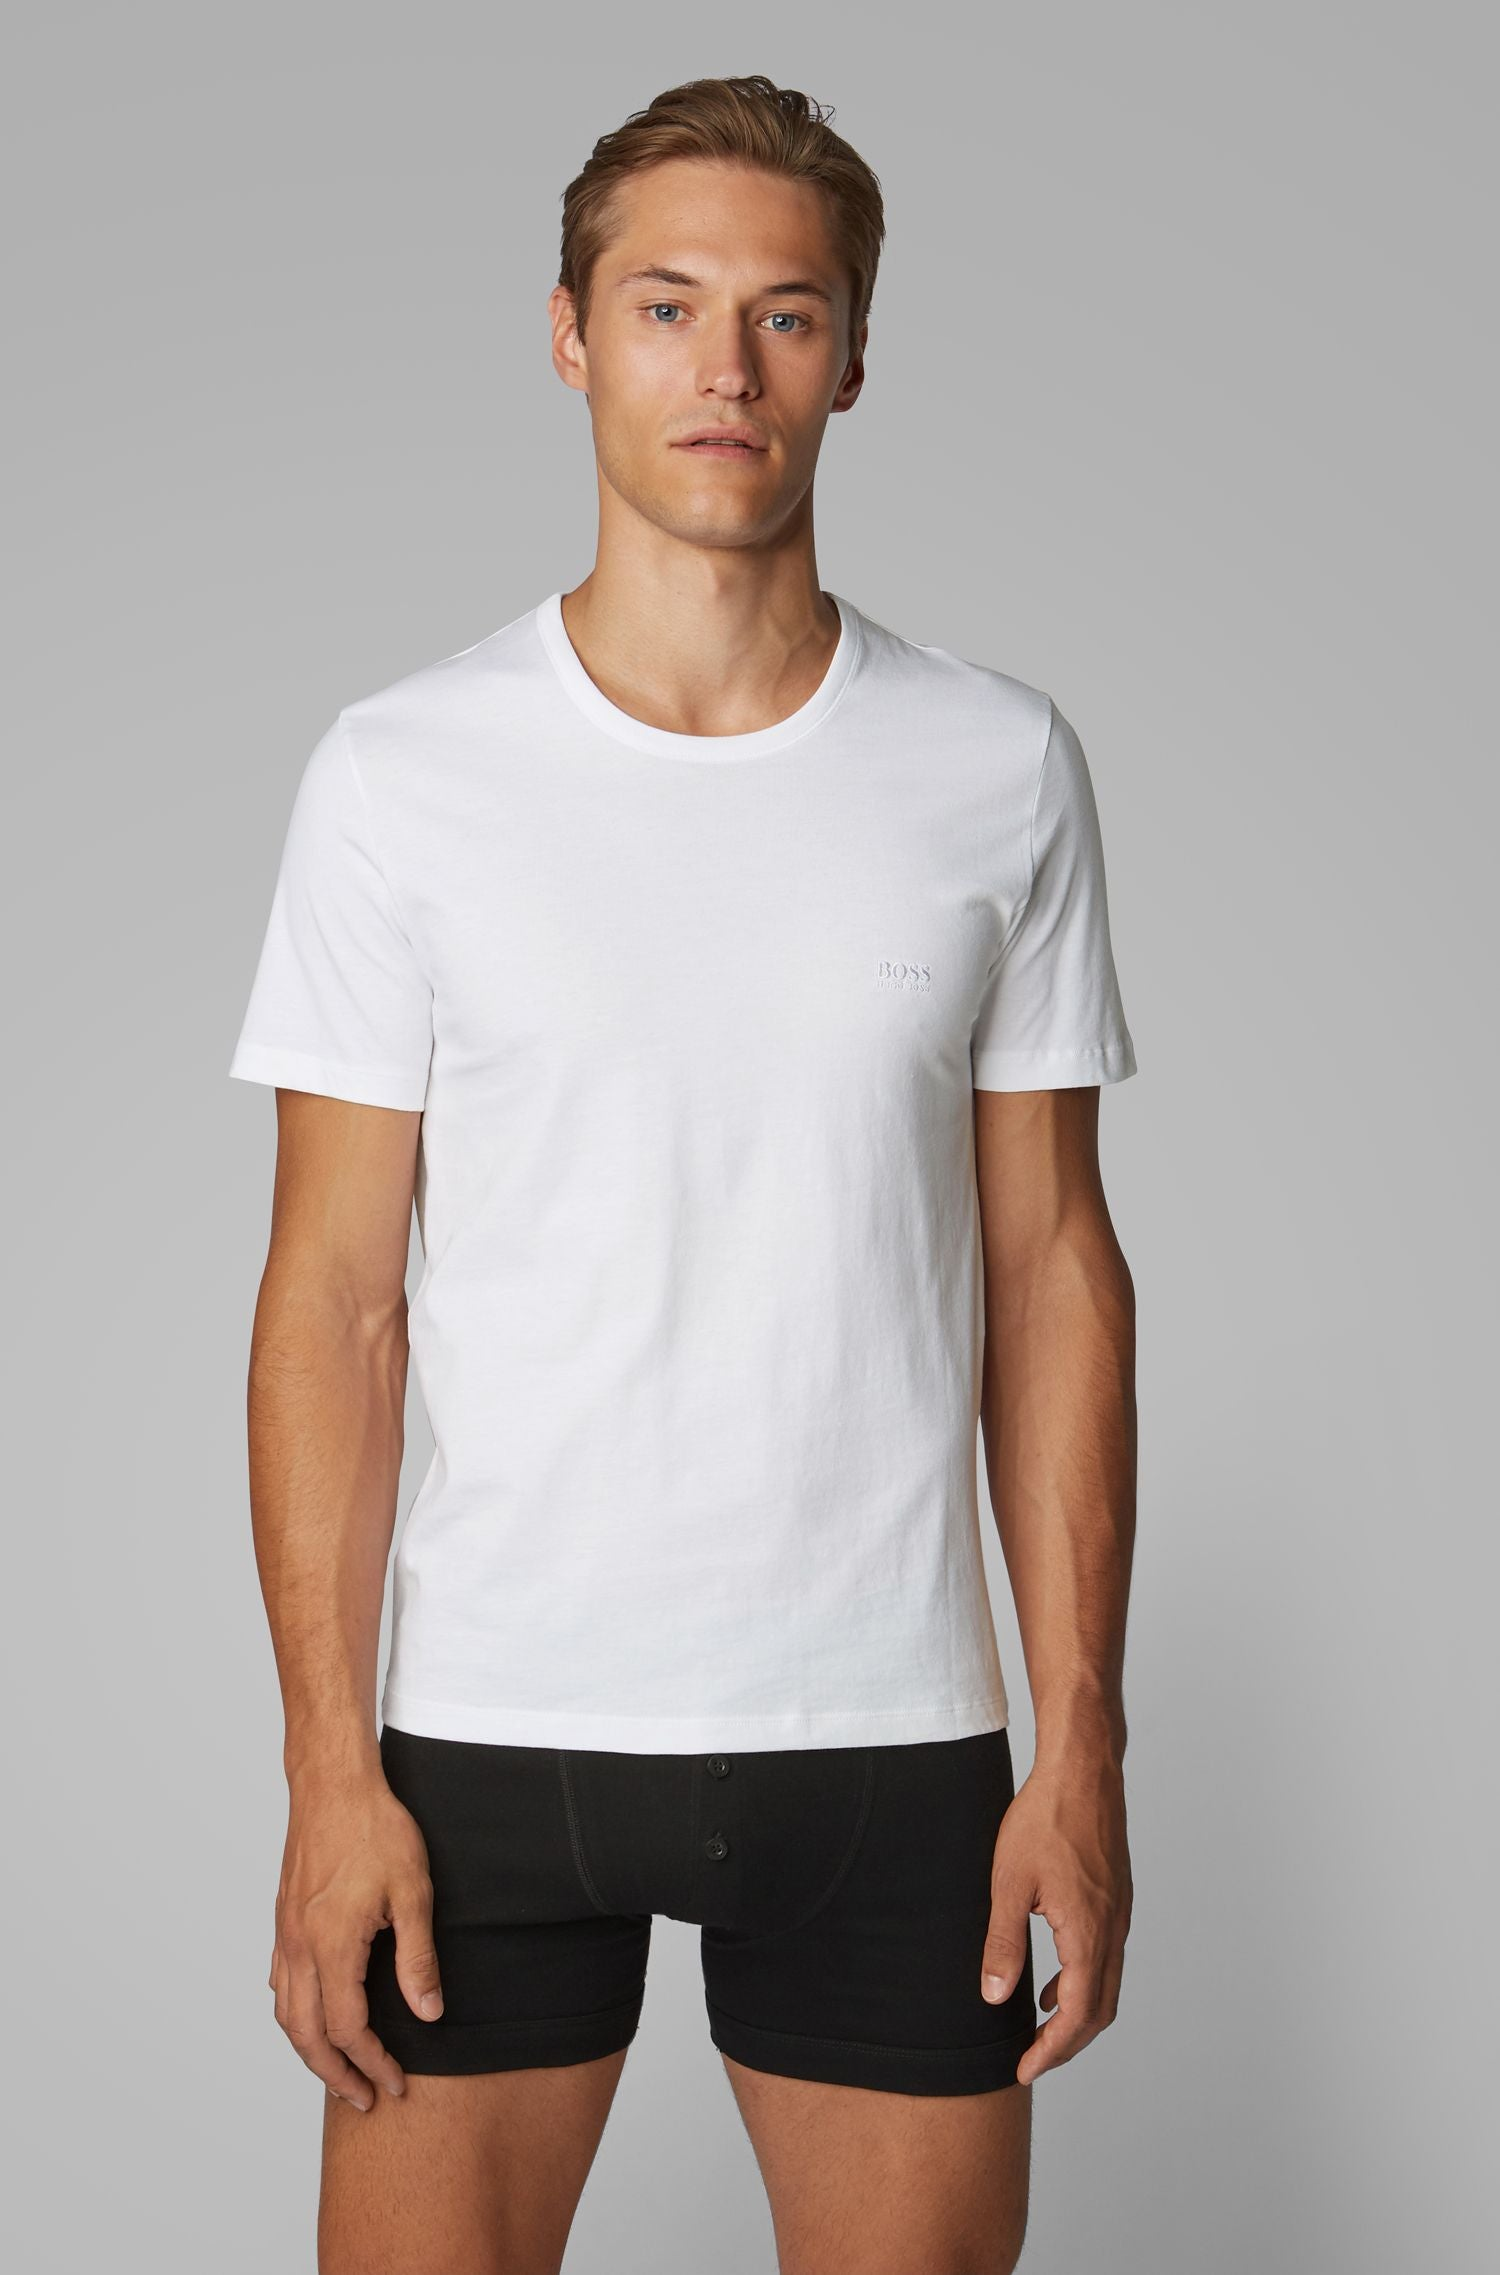 Hugo Boss - 3-pack Of All White Underwear T-Shirts In Pure Cotton 50325388